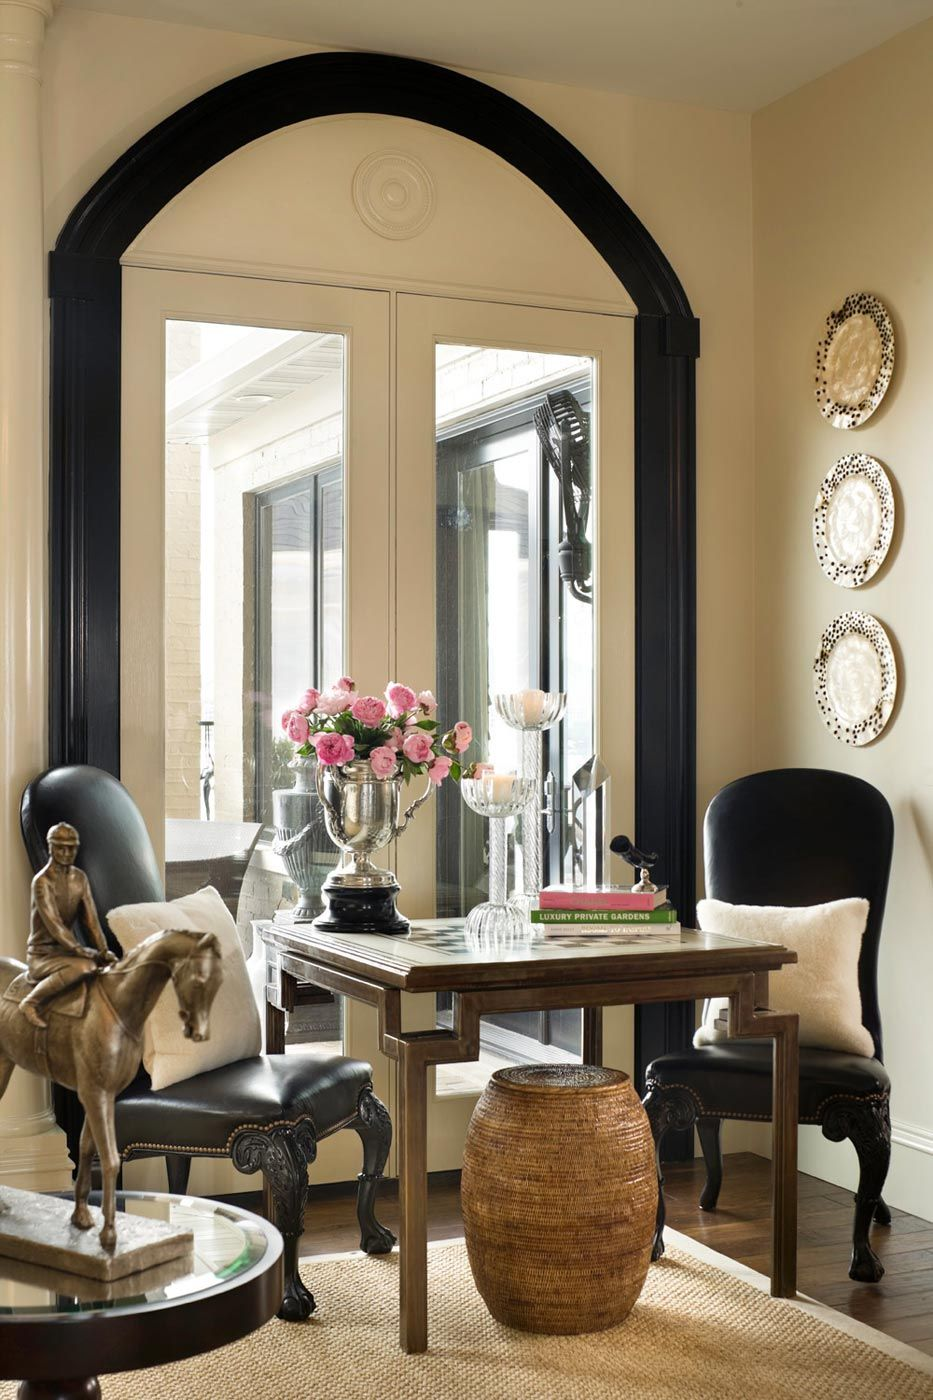 Luxuriate in the living room at the lovely game table interior